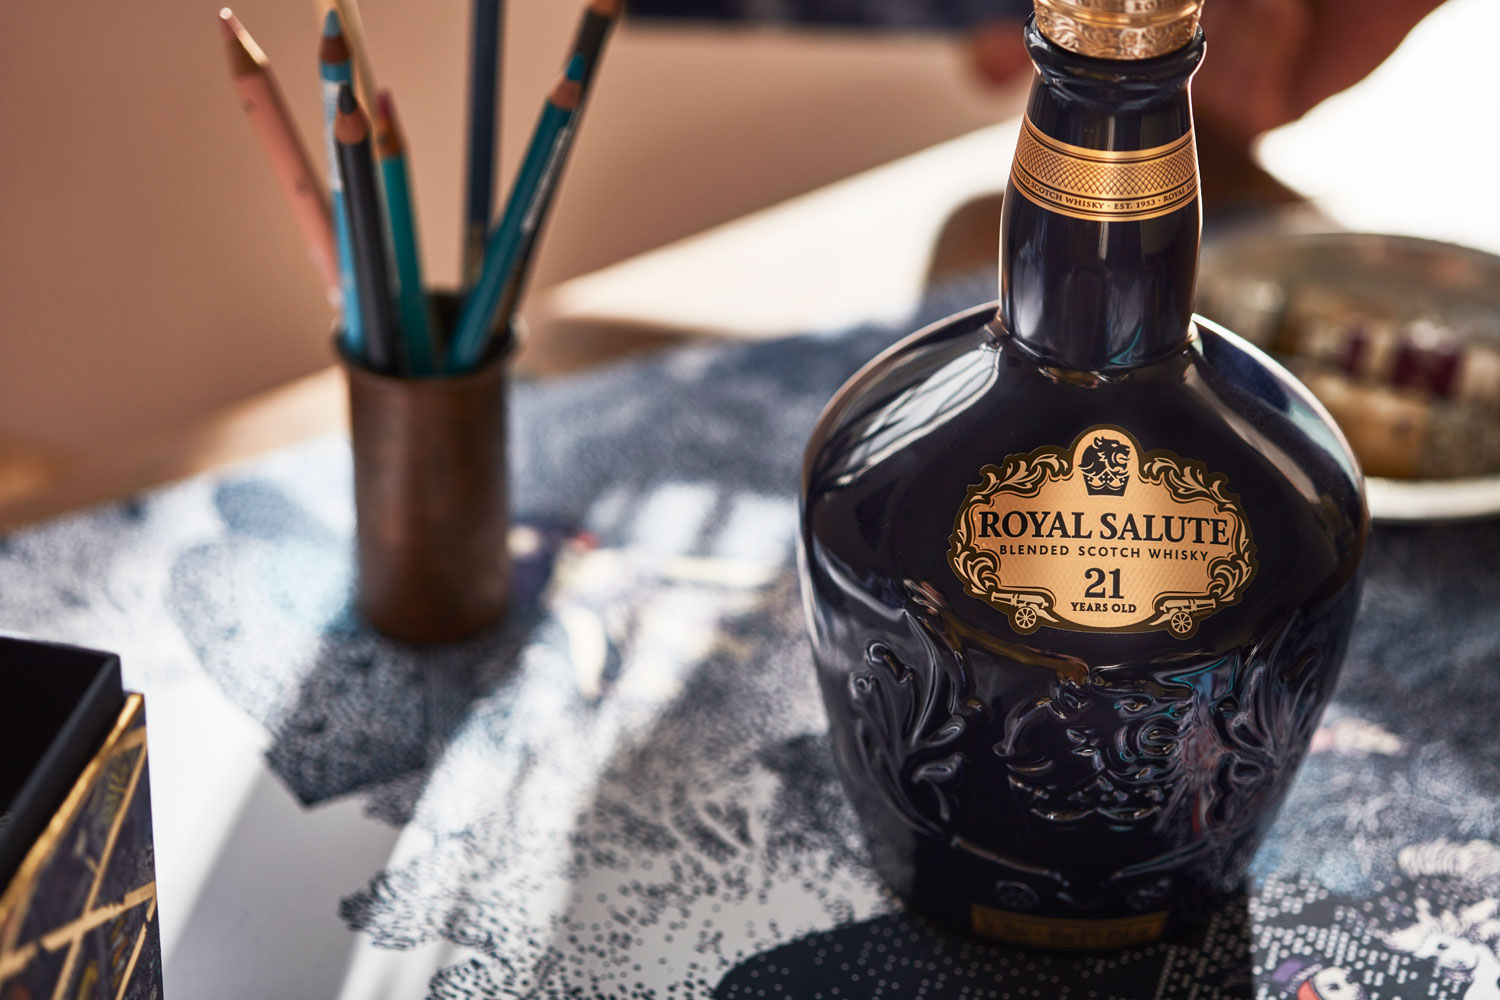 Royal Salute Unveils Masquerade Ball Gift Pack For The Festive Season 7